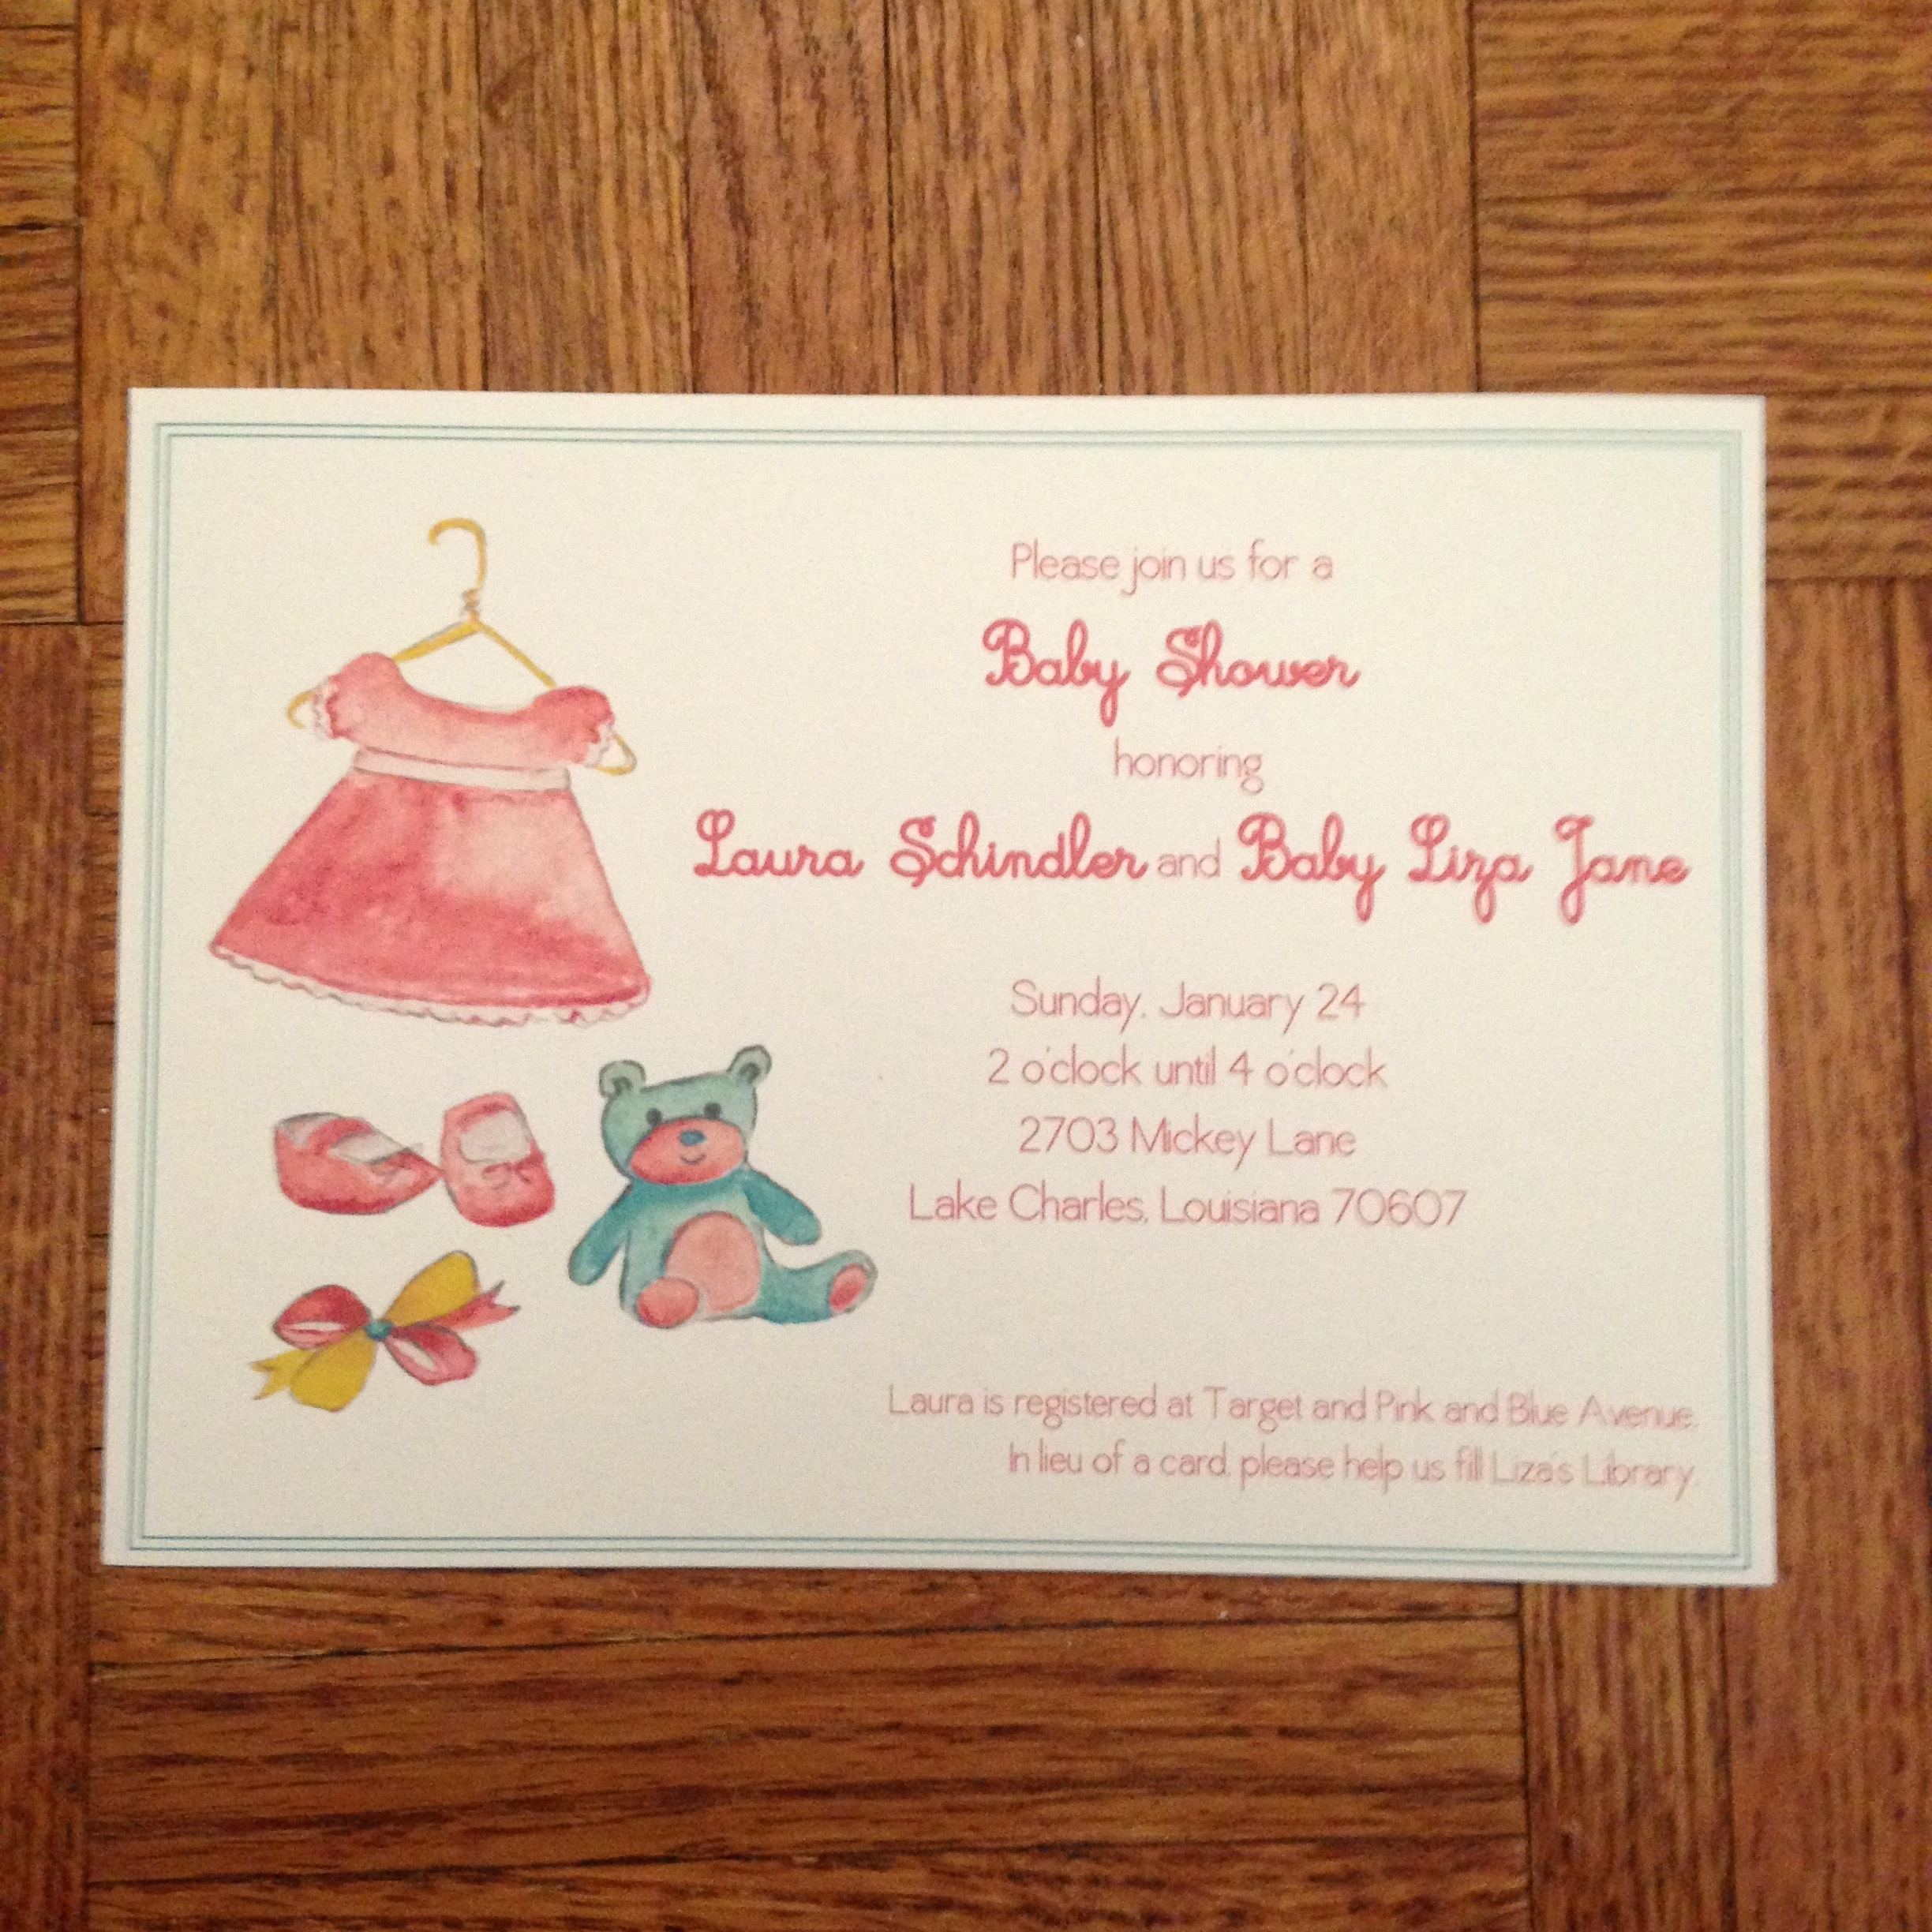 Baby Shower Invitation - baby girl